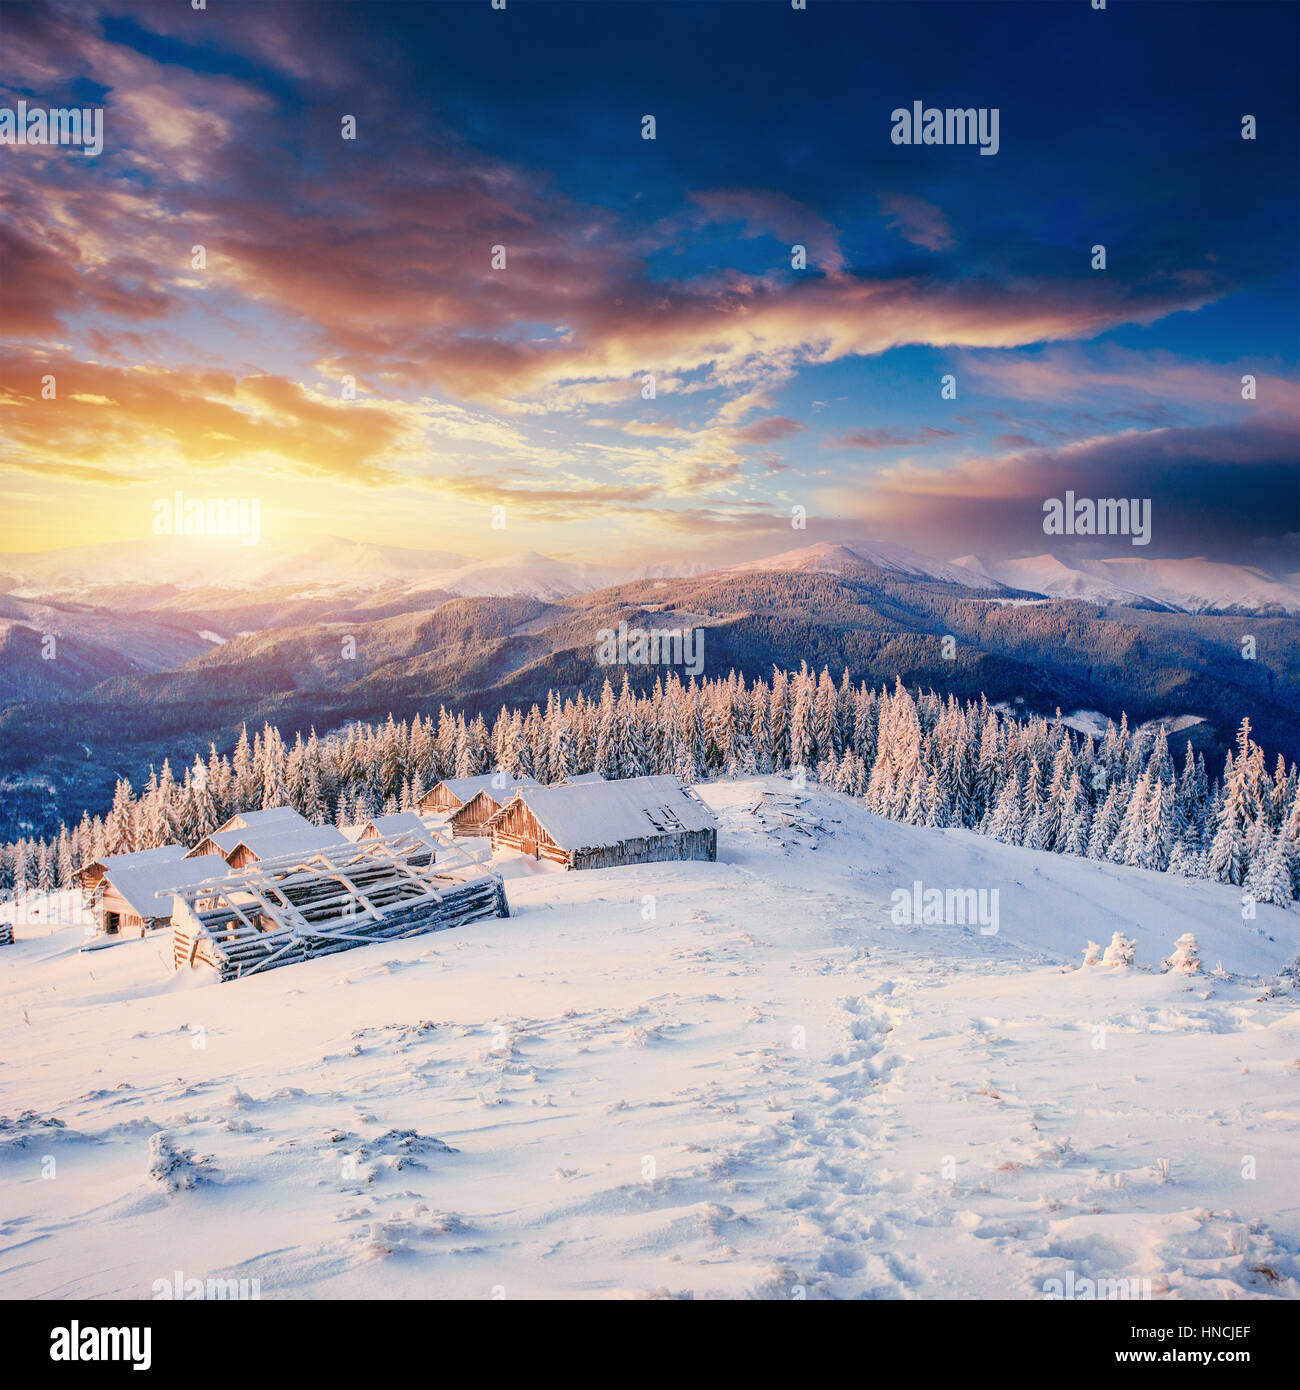 cabin in the mountains in winter. Carpathian, Ukraine Europe - Stock Image